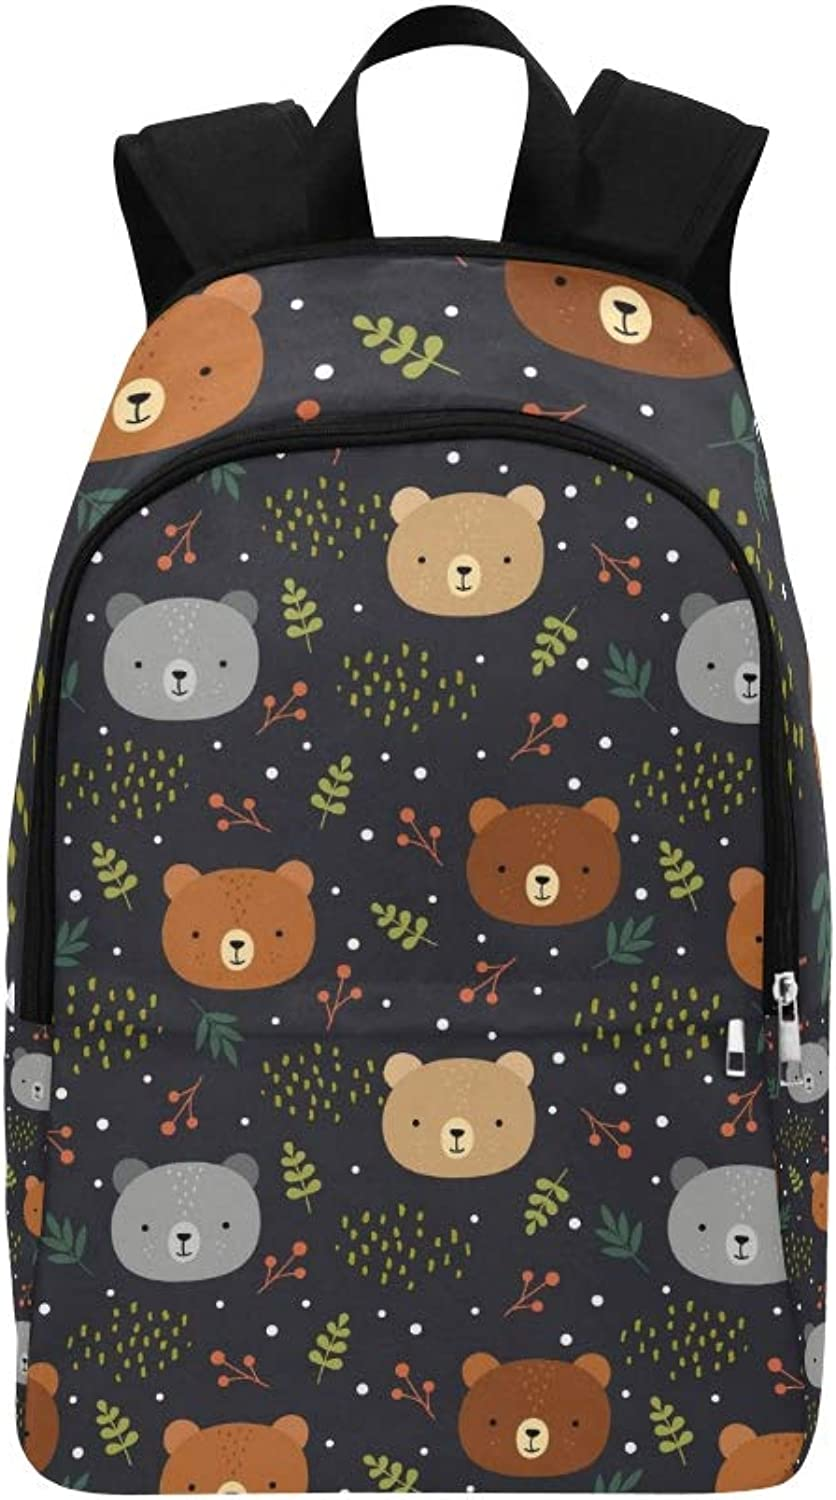 Cute Teddy Bears Casual Daypack Travel Bag College School Backpack for Mens and Women